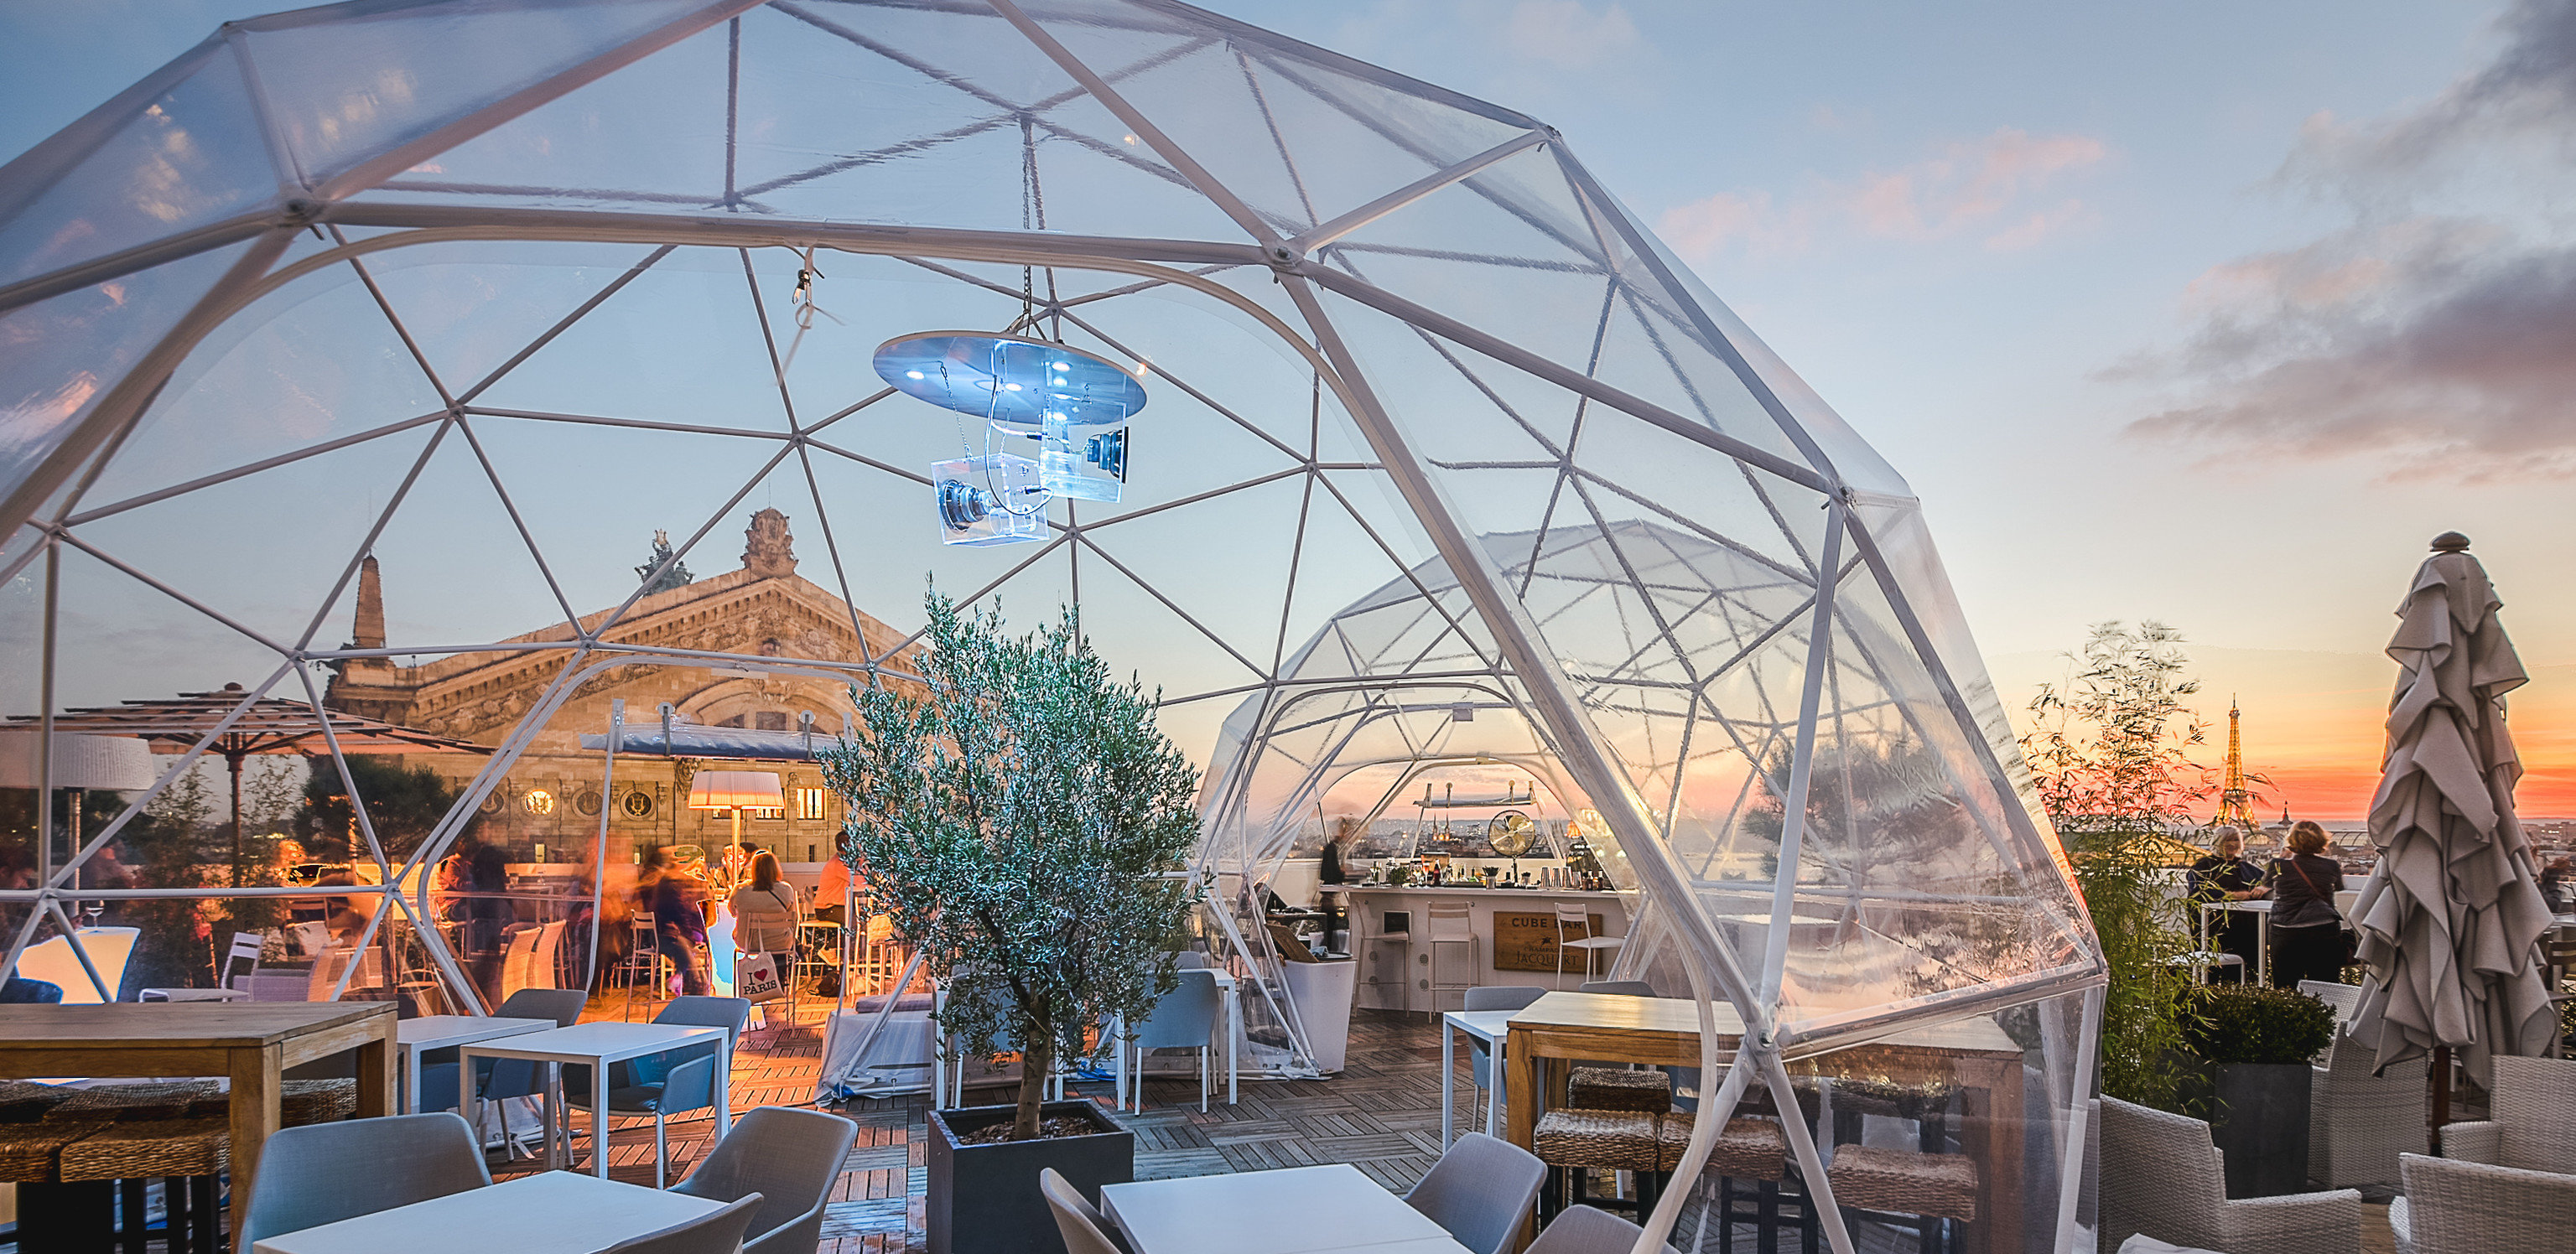 Food + Drink Paris Trip Ideas sky building outdoor dome structure tourist attraction roof outdoor structure City recreation amusement park day